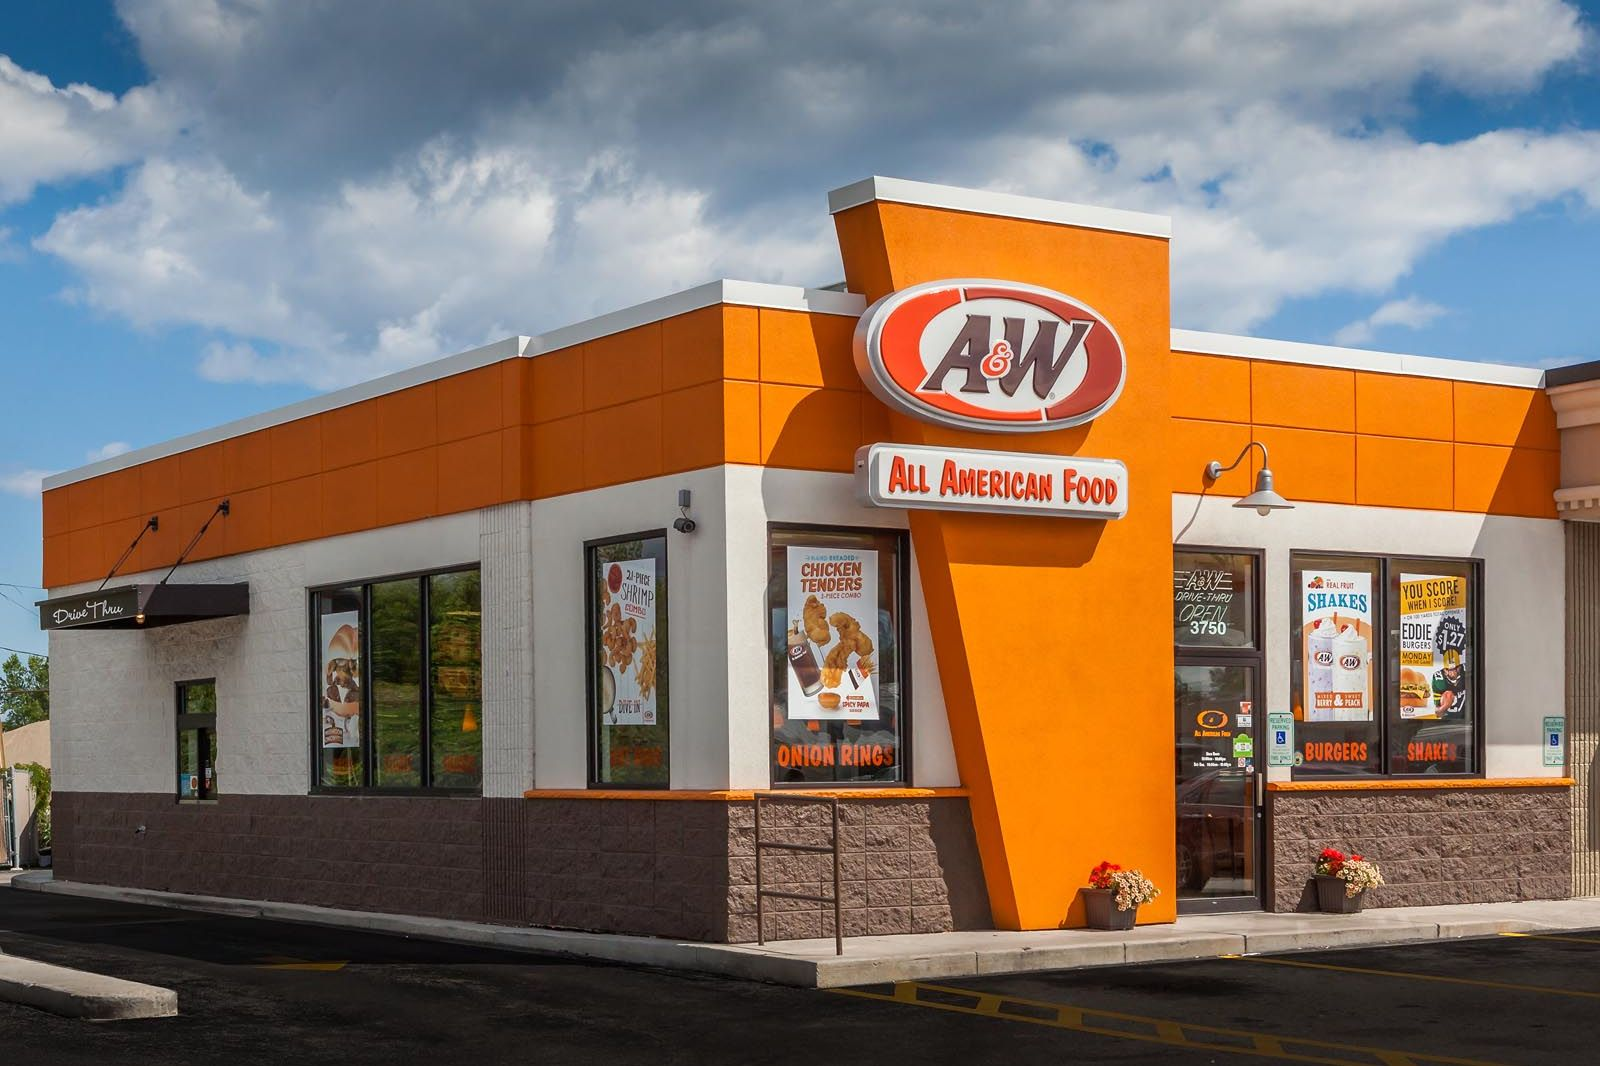 A&W Restaurants to Open 12 More Franchise Units as 100th Anniversary Approaches